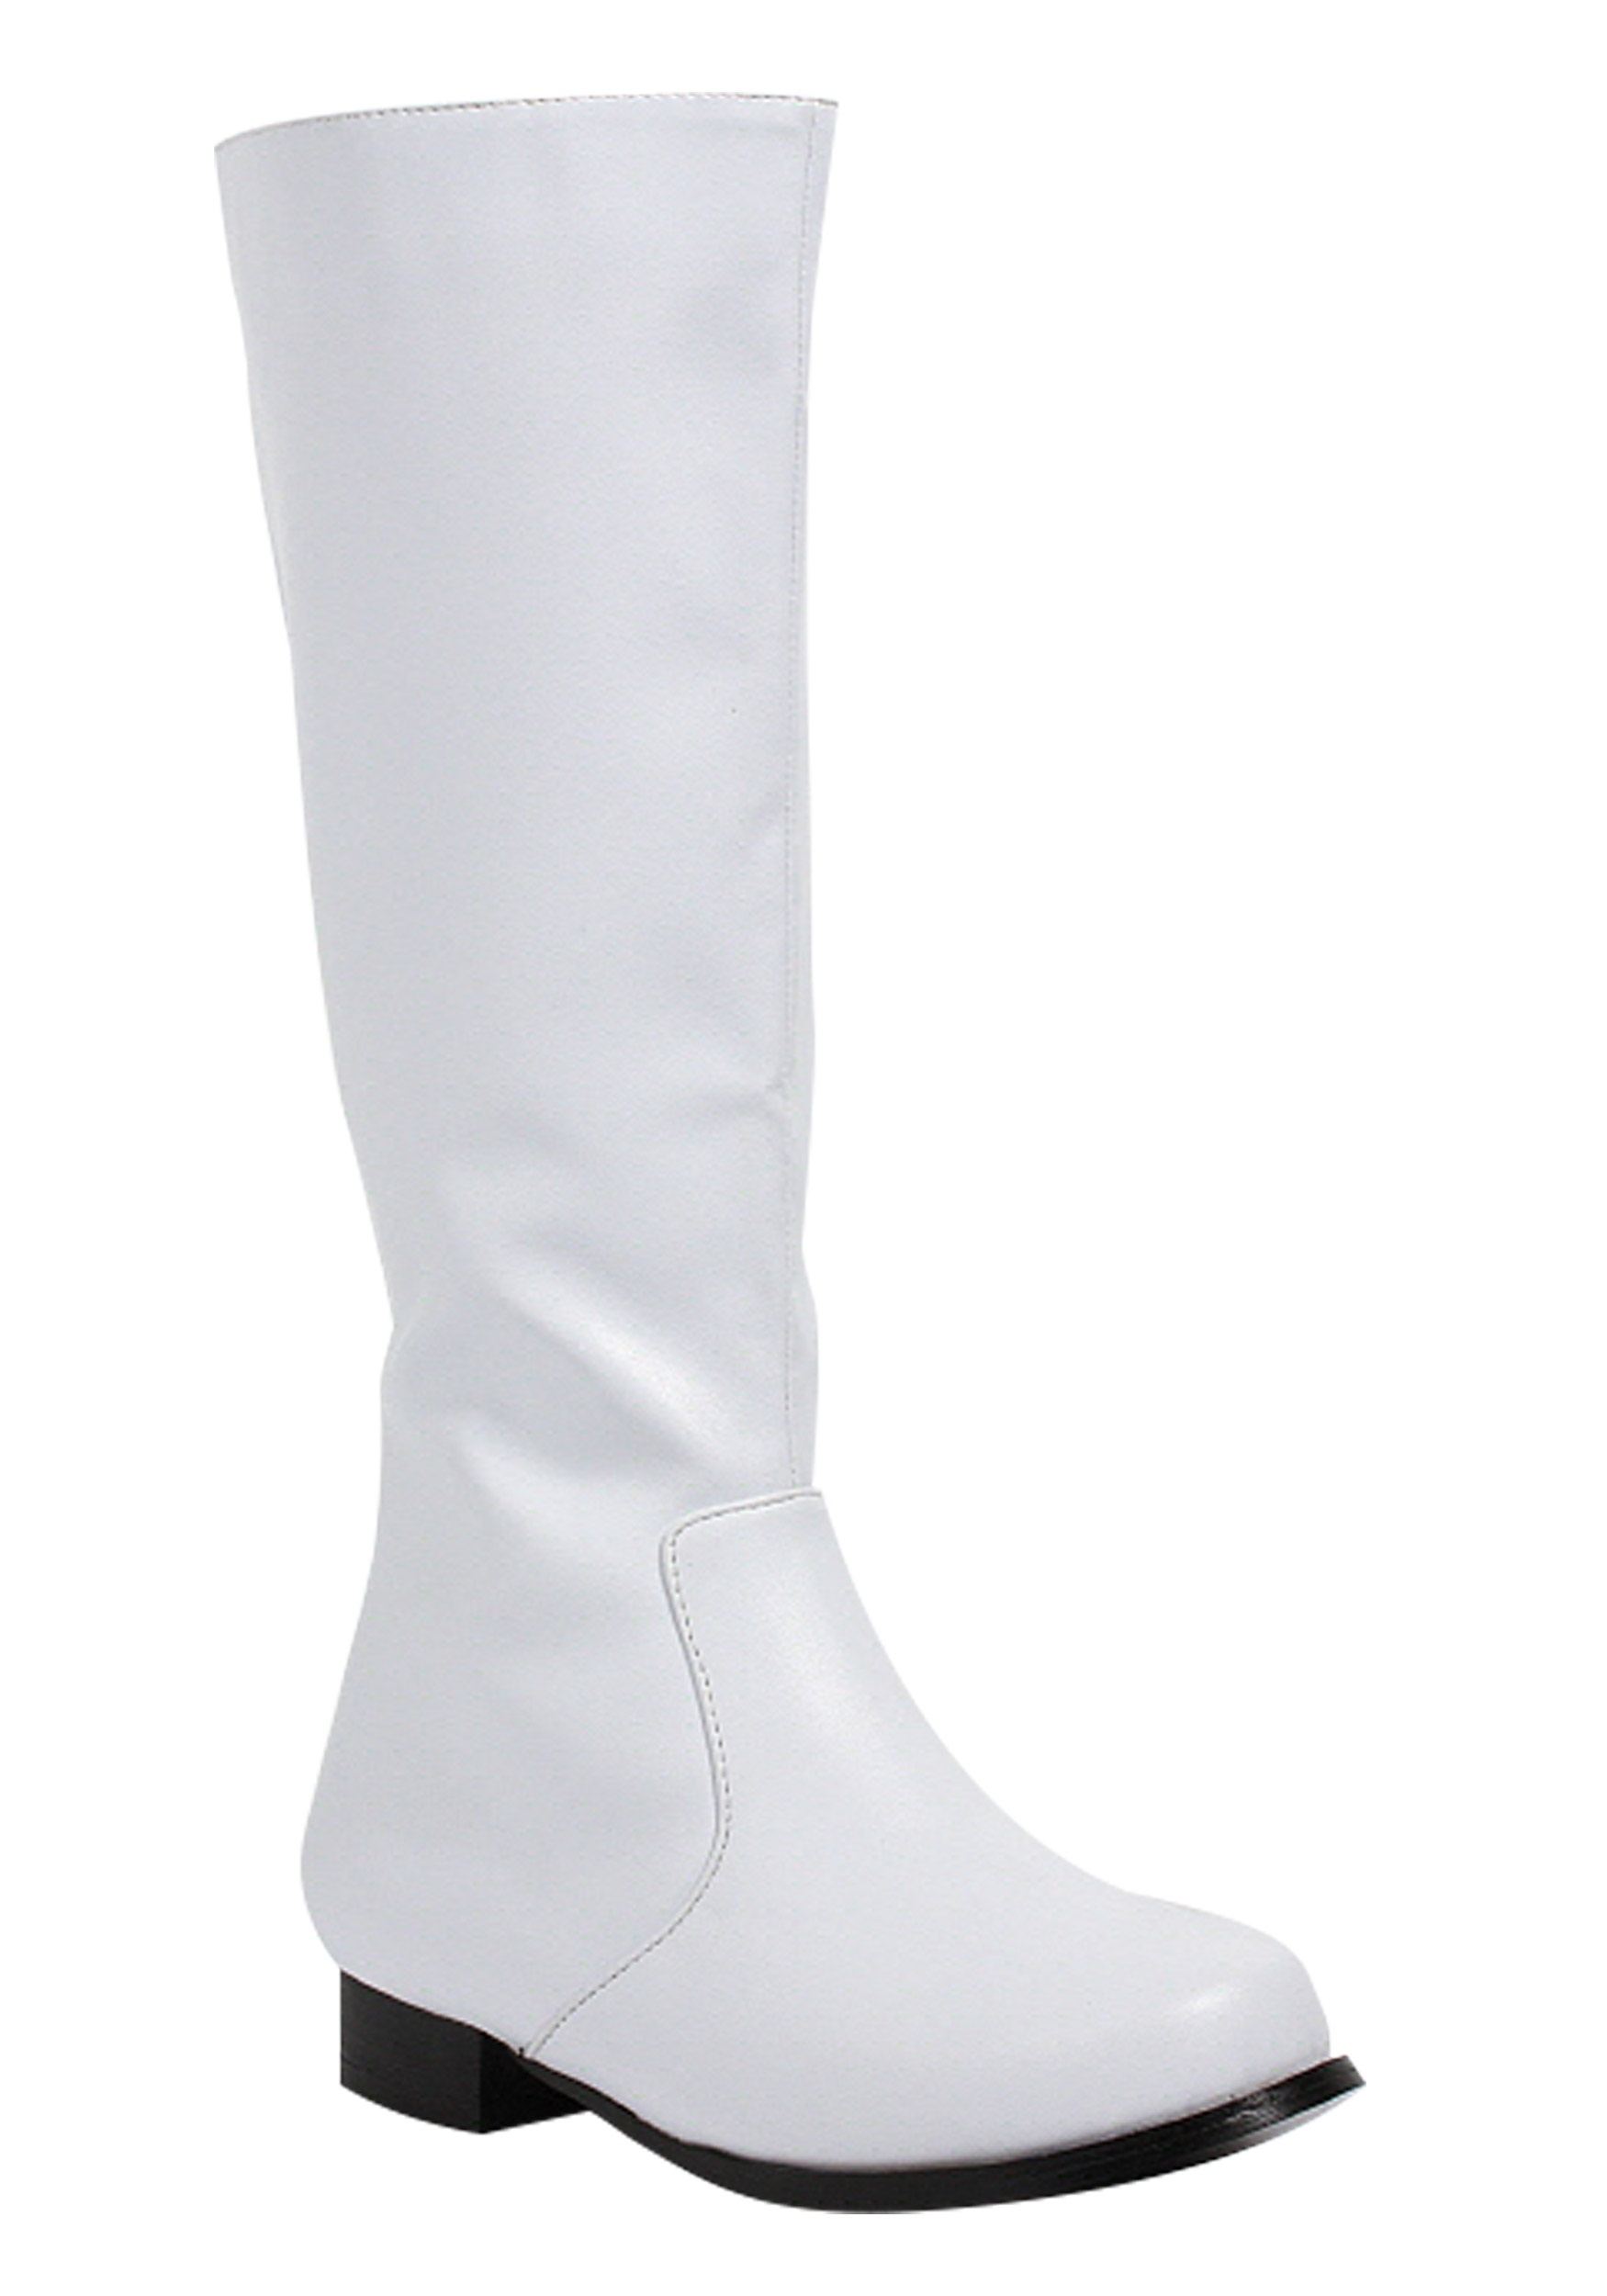 Boys Costume Boots in White